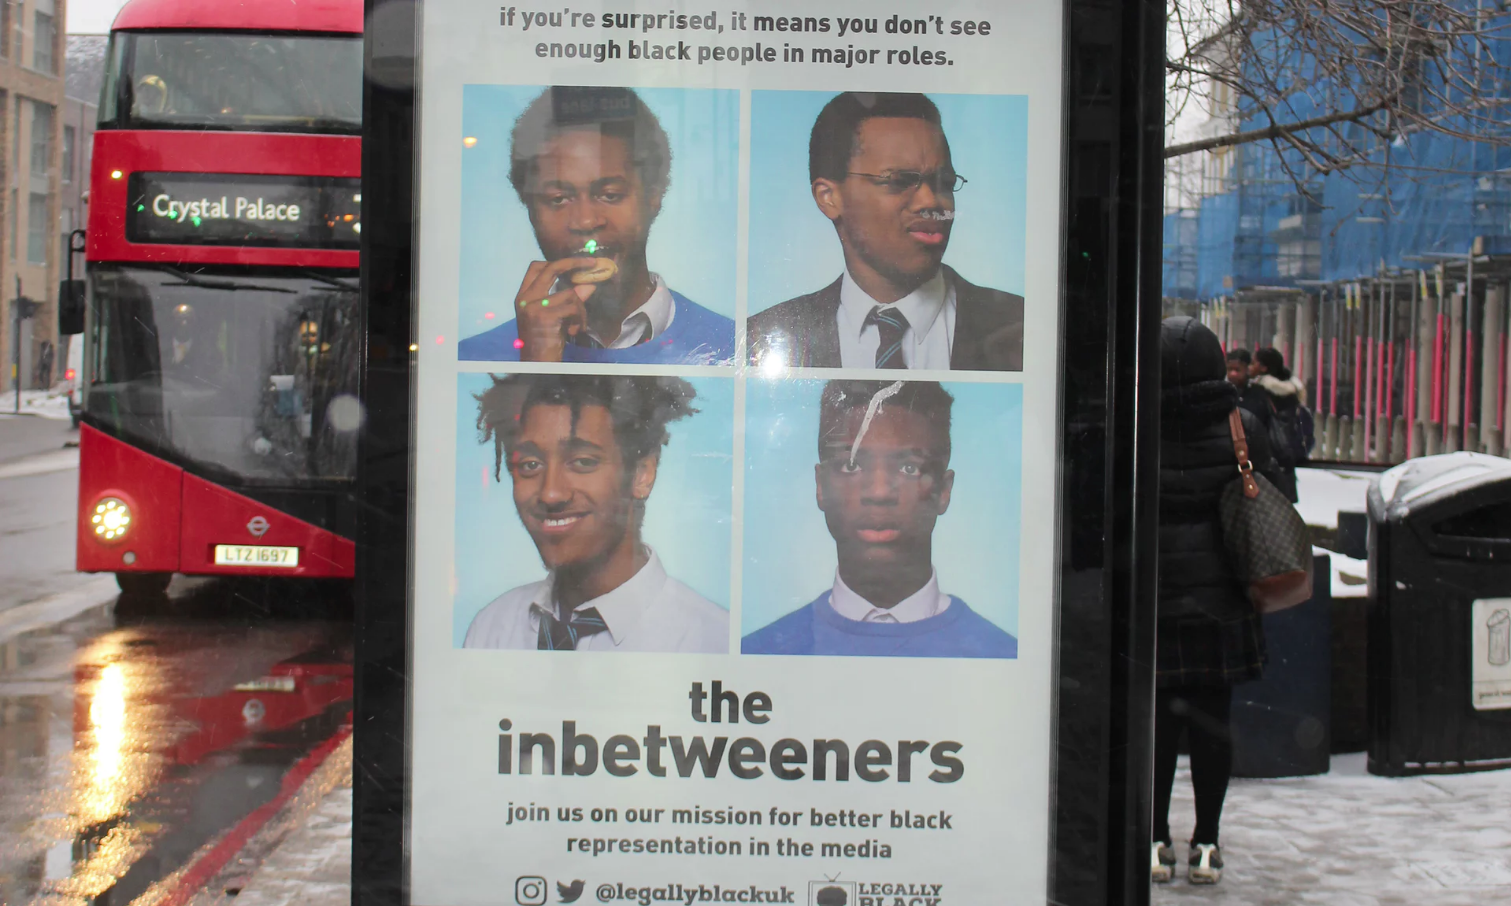 Legally Black_Inbetweeners